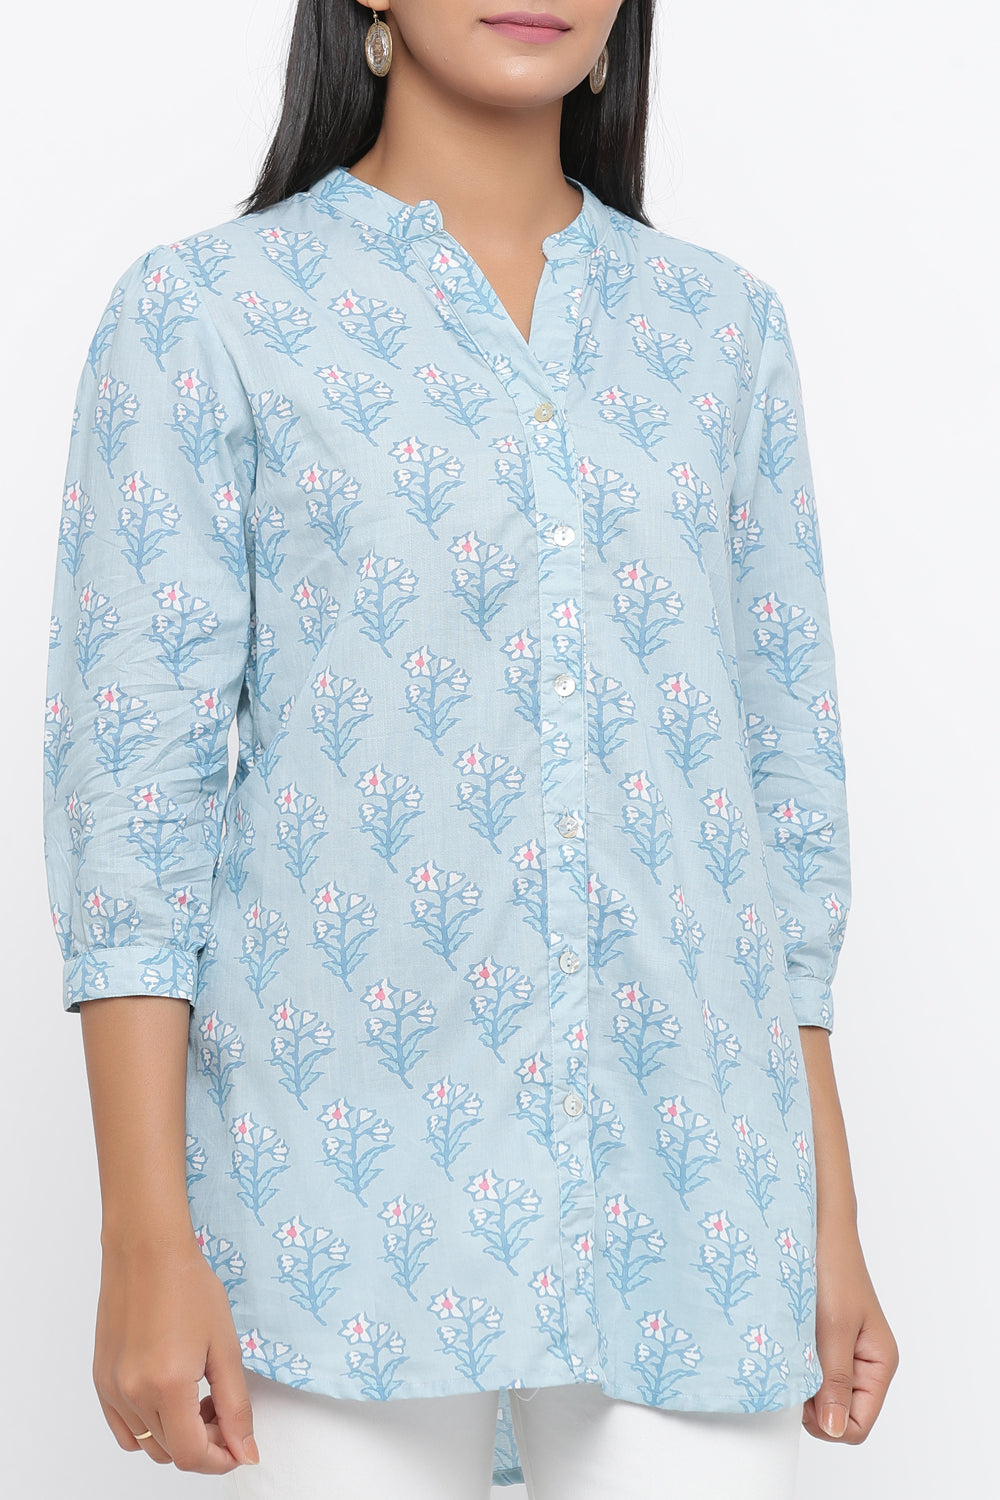 BLUE COLOUR FLORAL PRINTED COTTON TUNIC